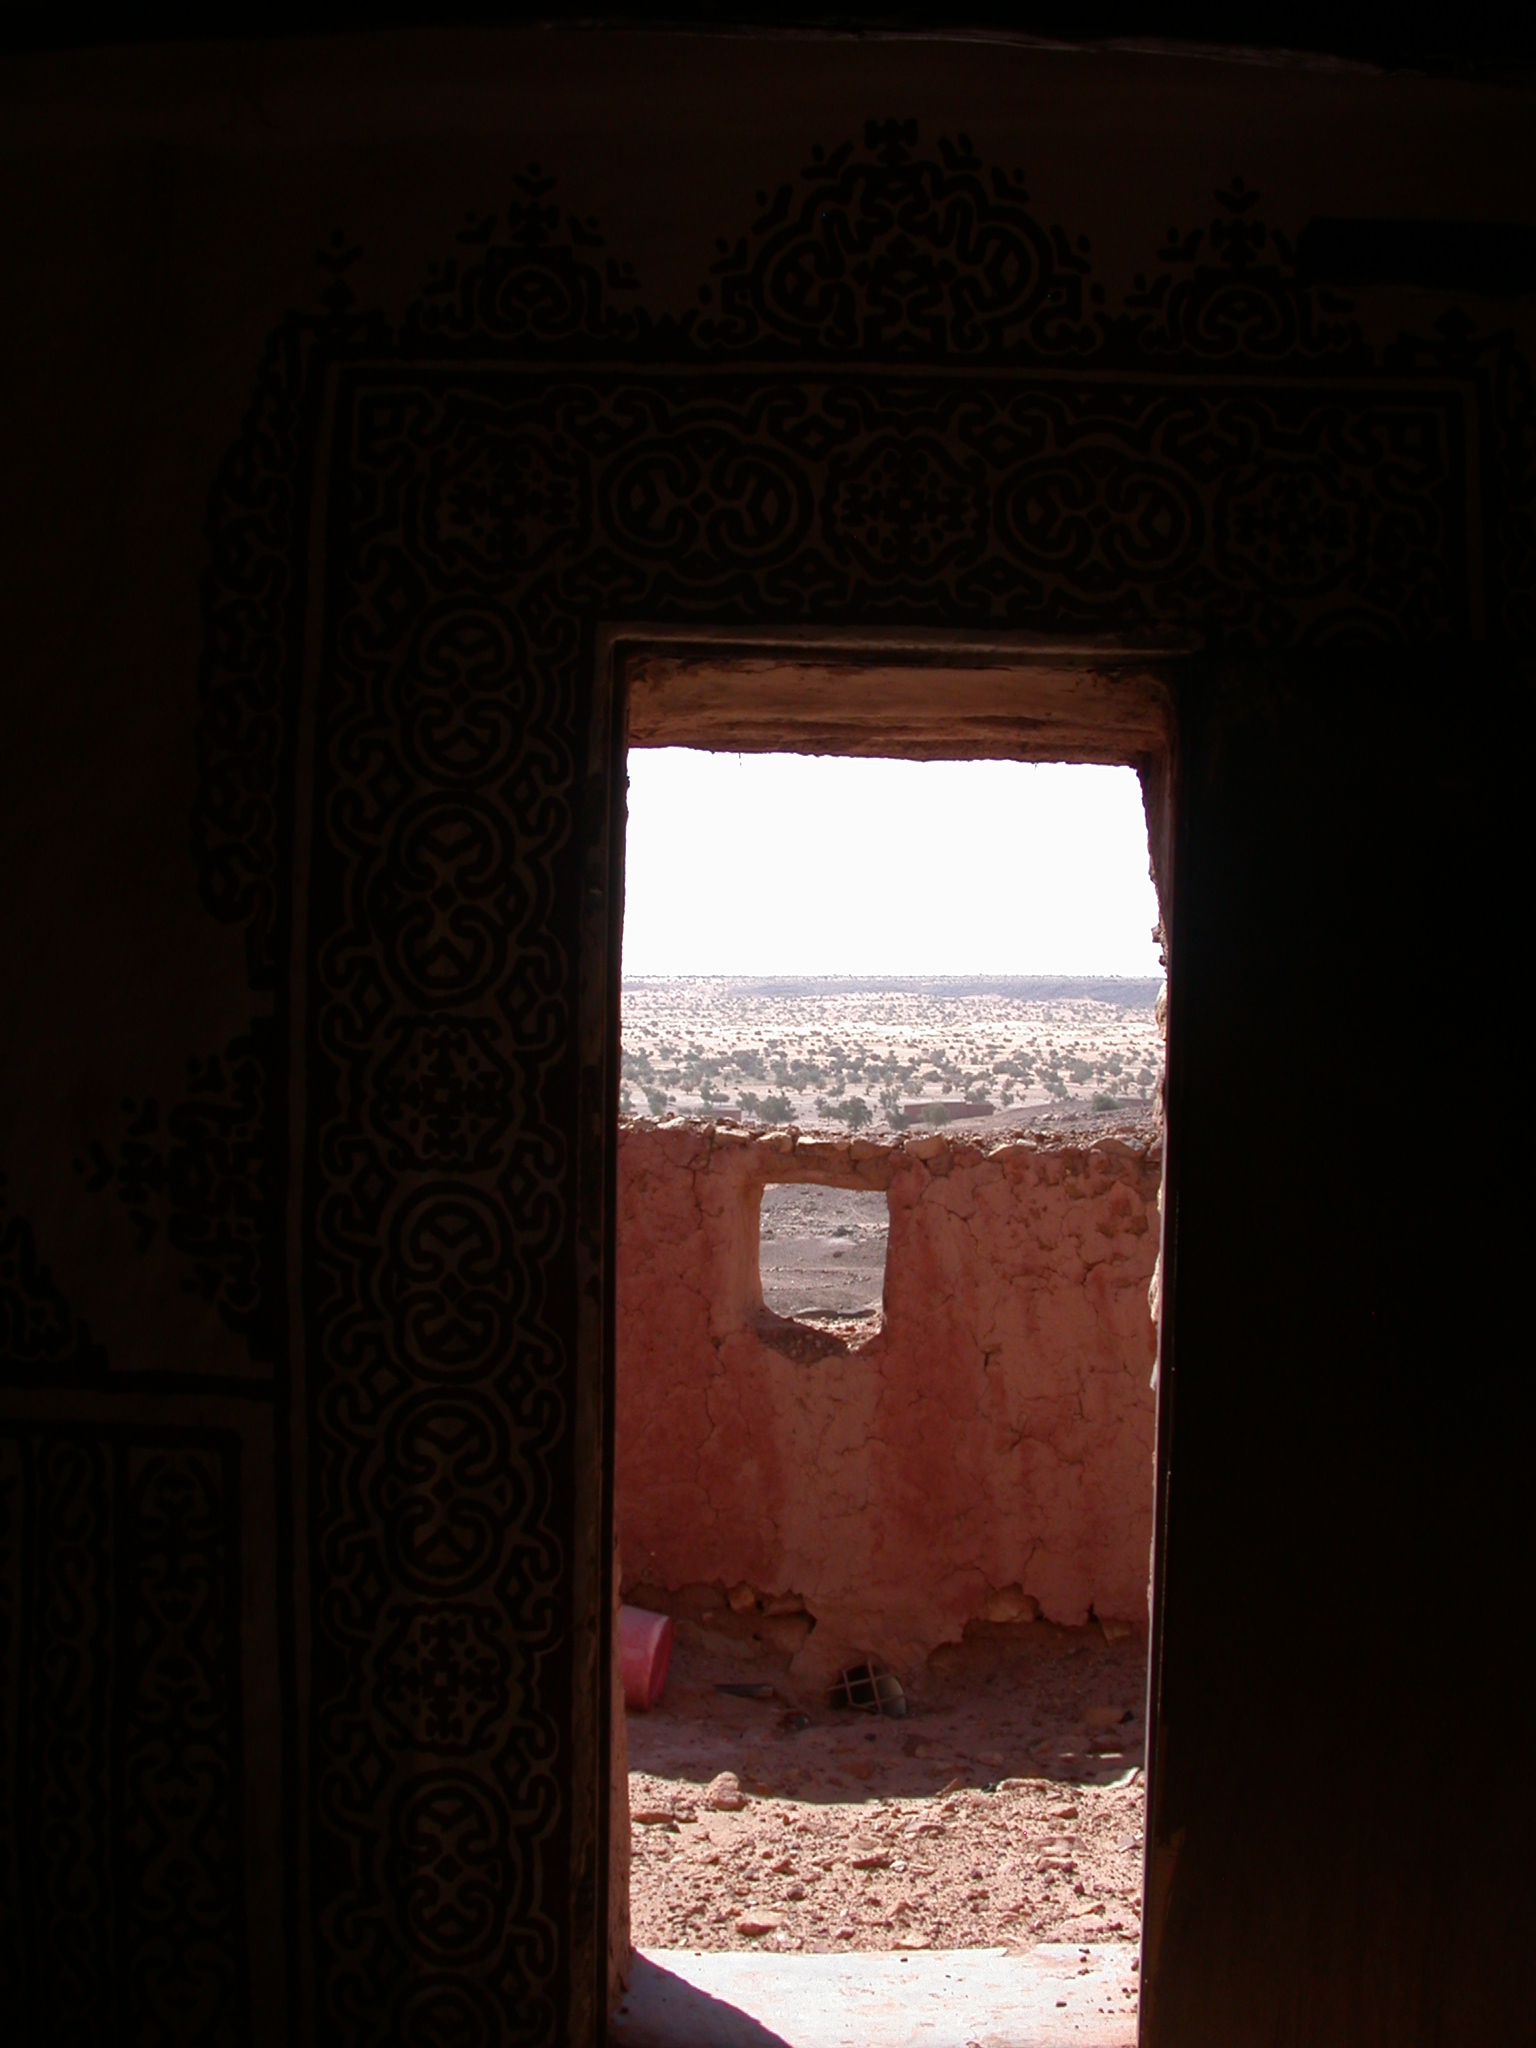 Outward View From Interior of Library in Ancient City of Oulata, Mauritania